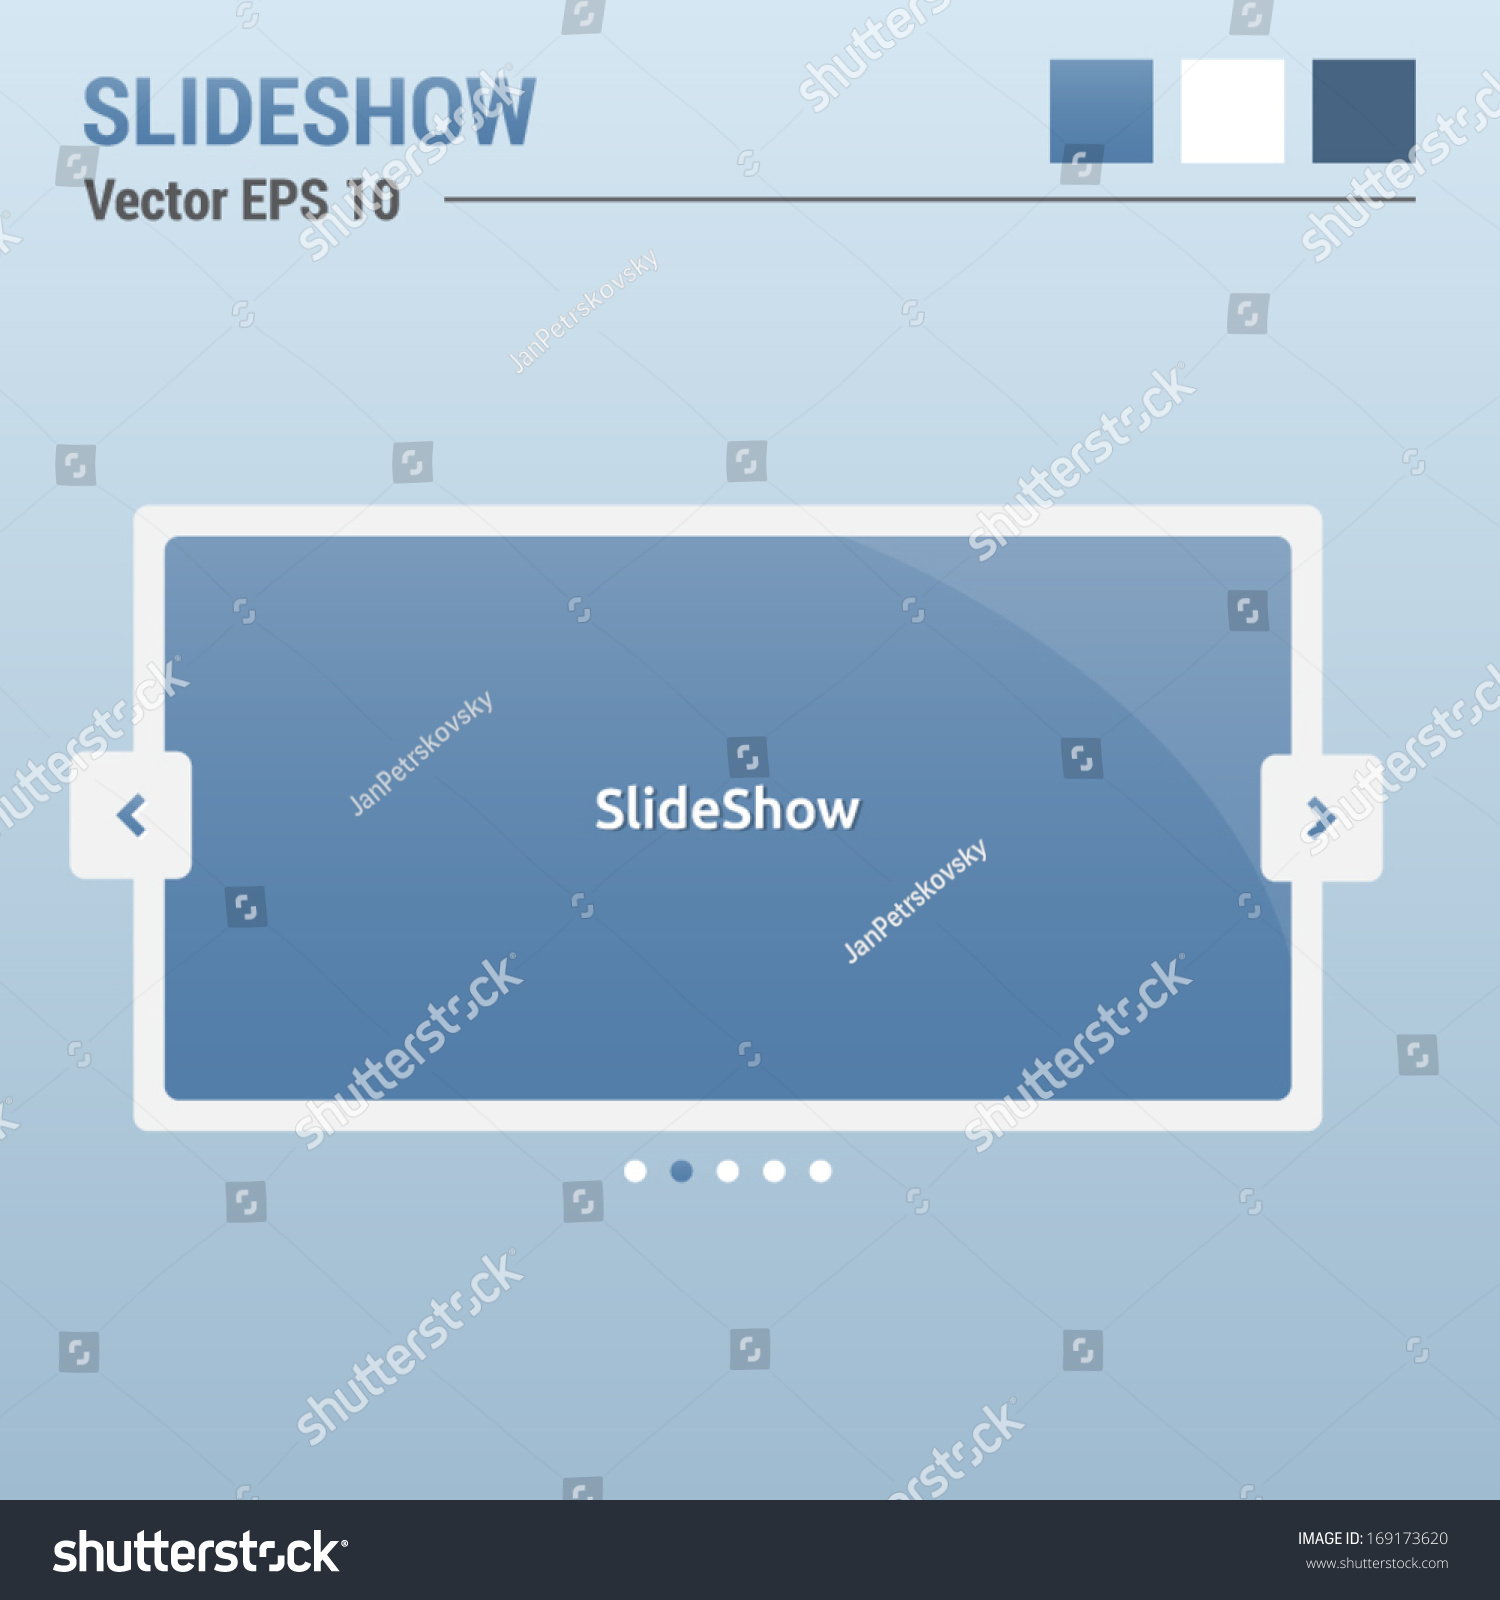 Slideshow Website Elements Web Design Ui Stock Vector 169173620 ...